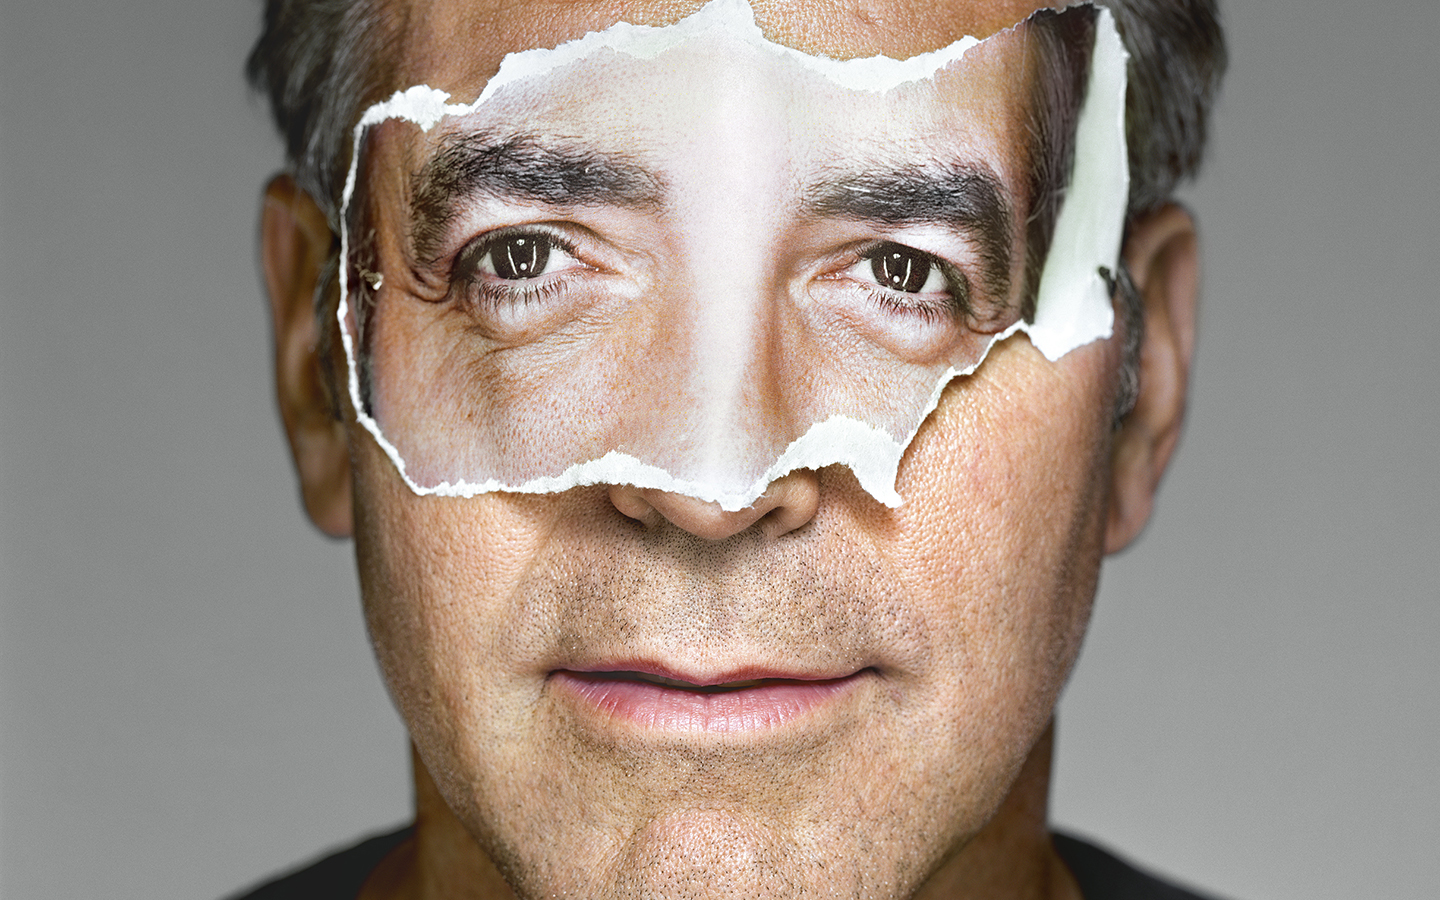 George Clooney photographed by Martin Schoeller